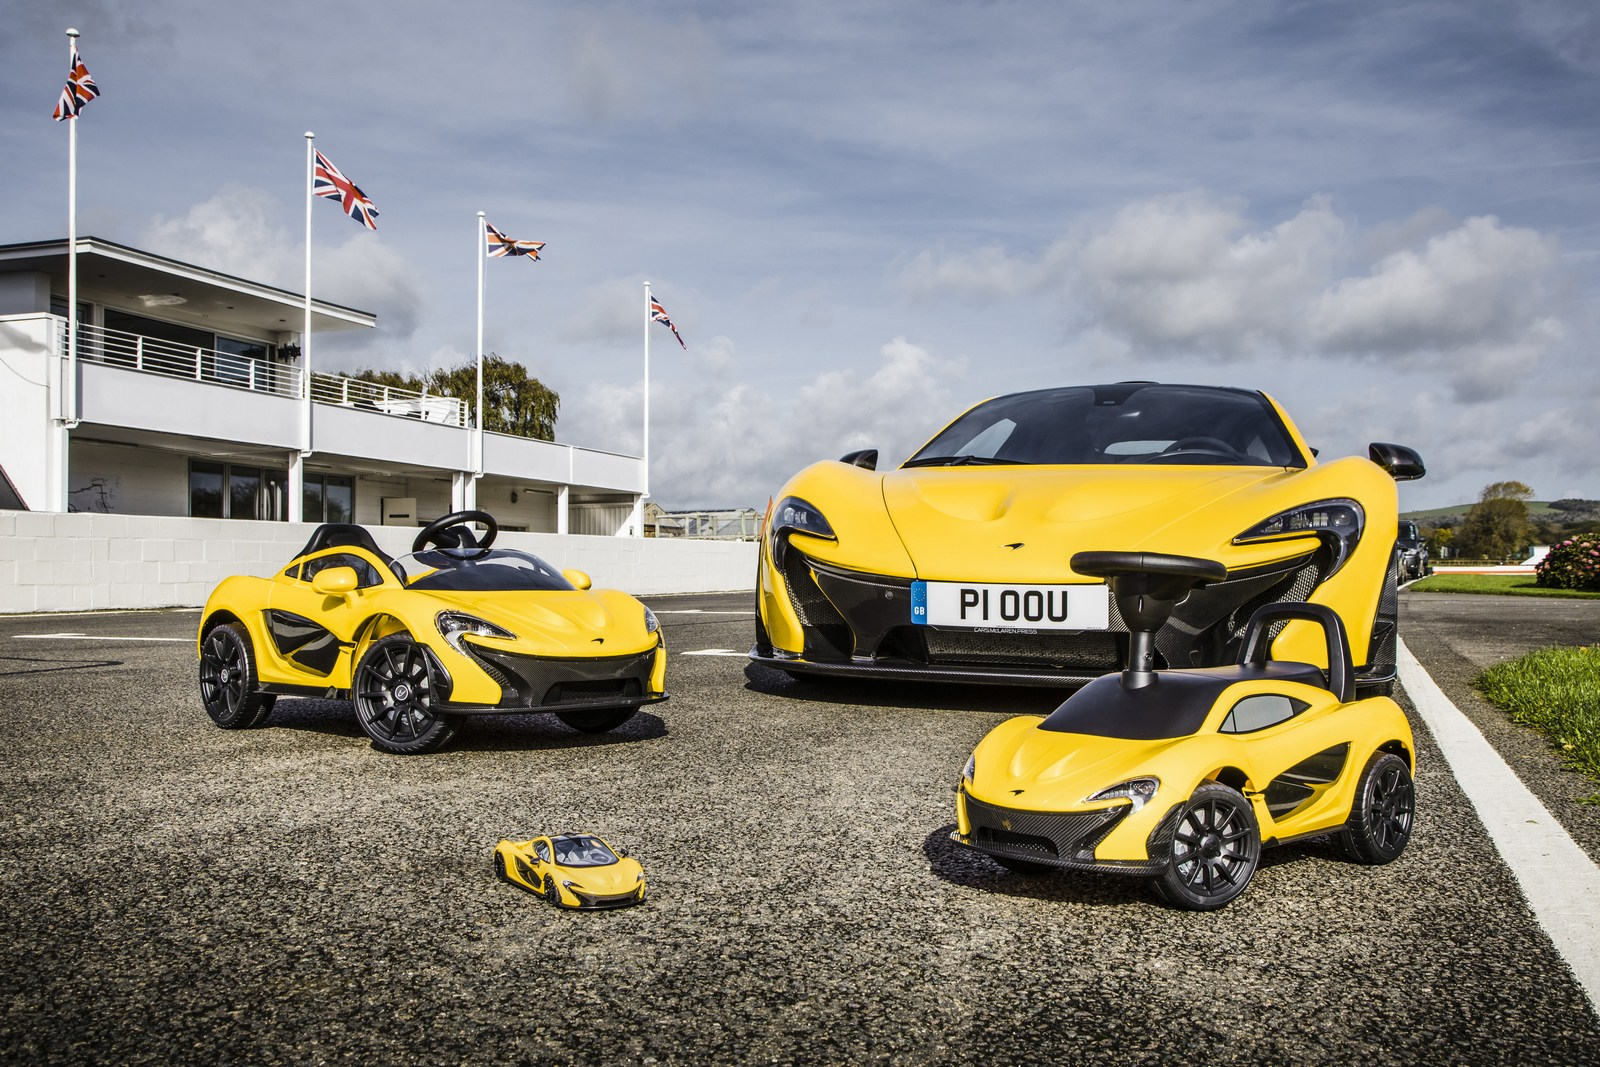 Mclaren P1 Foot To Floor Edition Is An Extremely